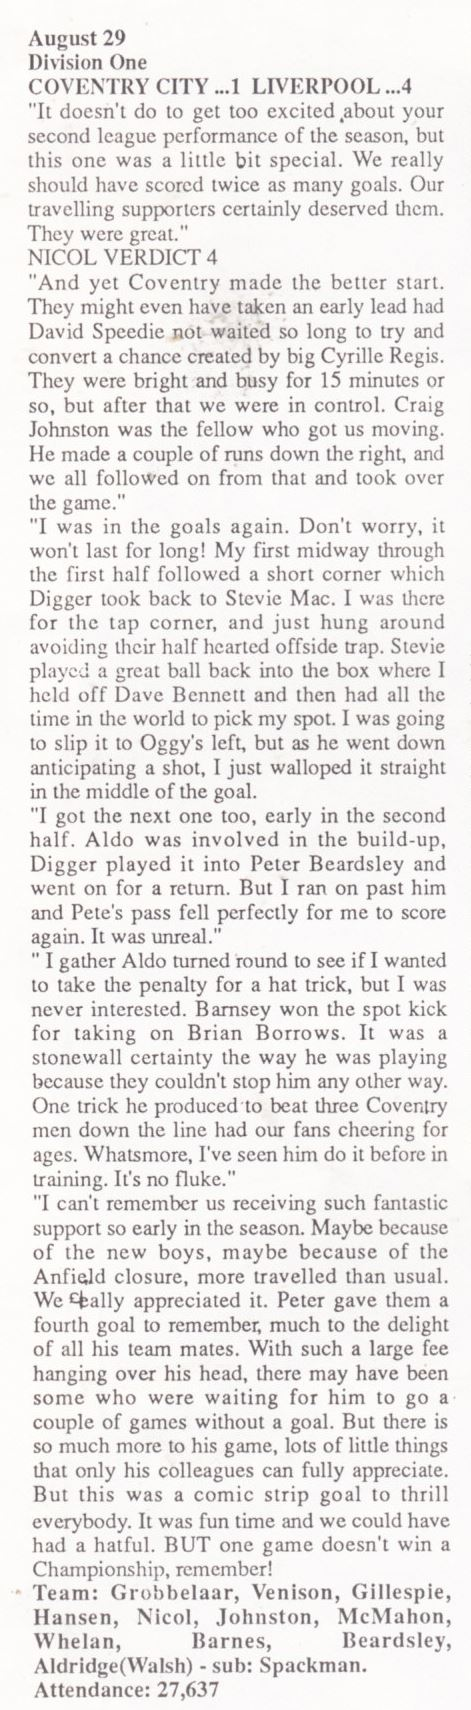 Nicol's verdict in the Liverpool fan club magazine on Coventry - Liverpool on 29 August 1987